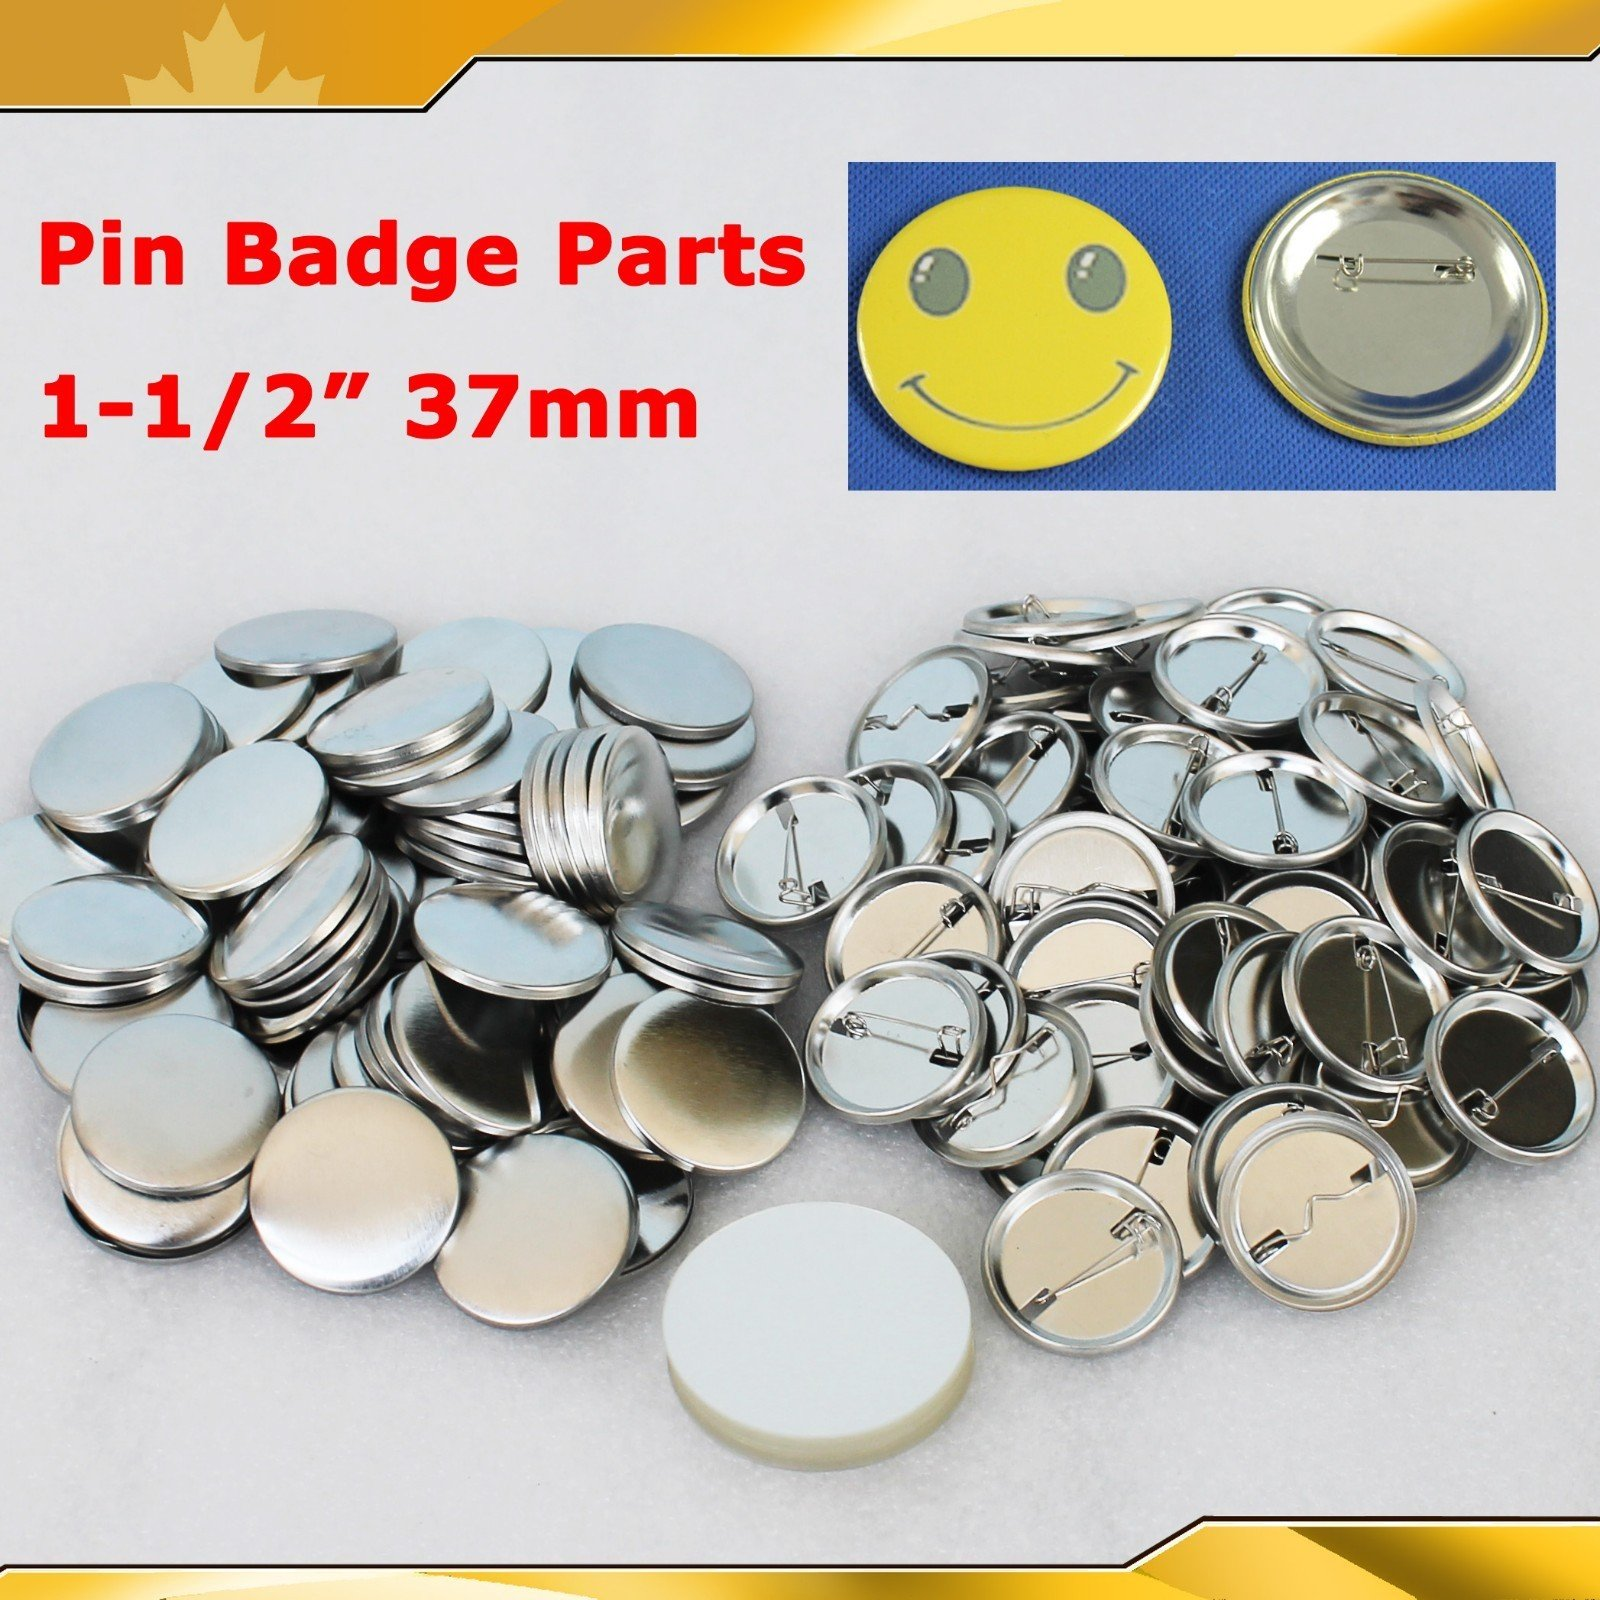 1-1/2'' 37mm 100Sets Pin Badge Button Parts Supplies for Pro Maker Machine by Button Maker (Image #1)